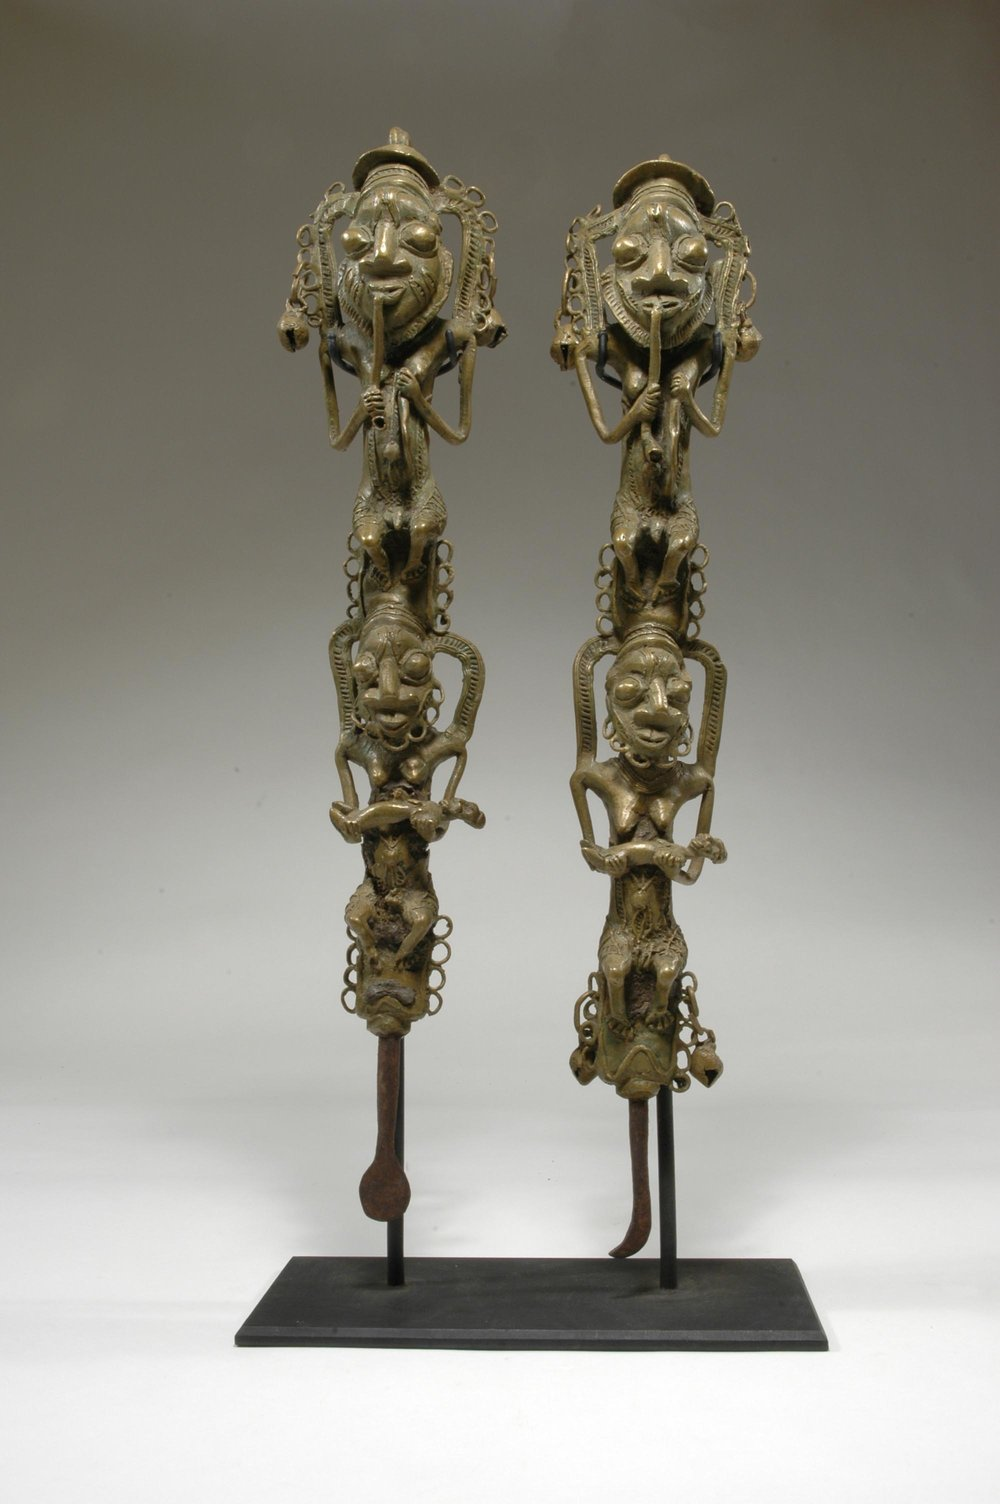 Artist unknown (Yorùbá peoples, Nigeria), figurated staffs for Ògbóni society ( ẹdan  Ògbóni), 19th century, iron, copper alloy (cast). Charles and Kent Davis